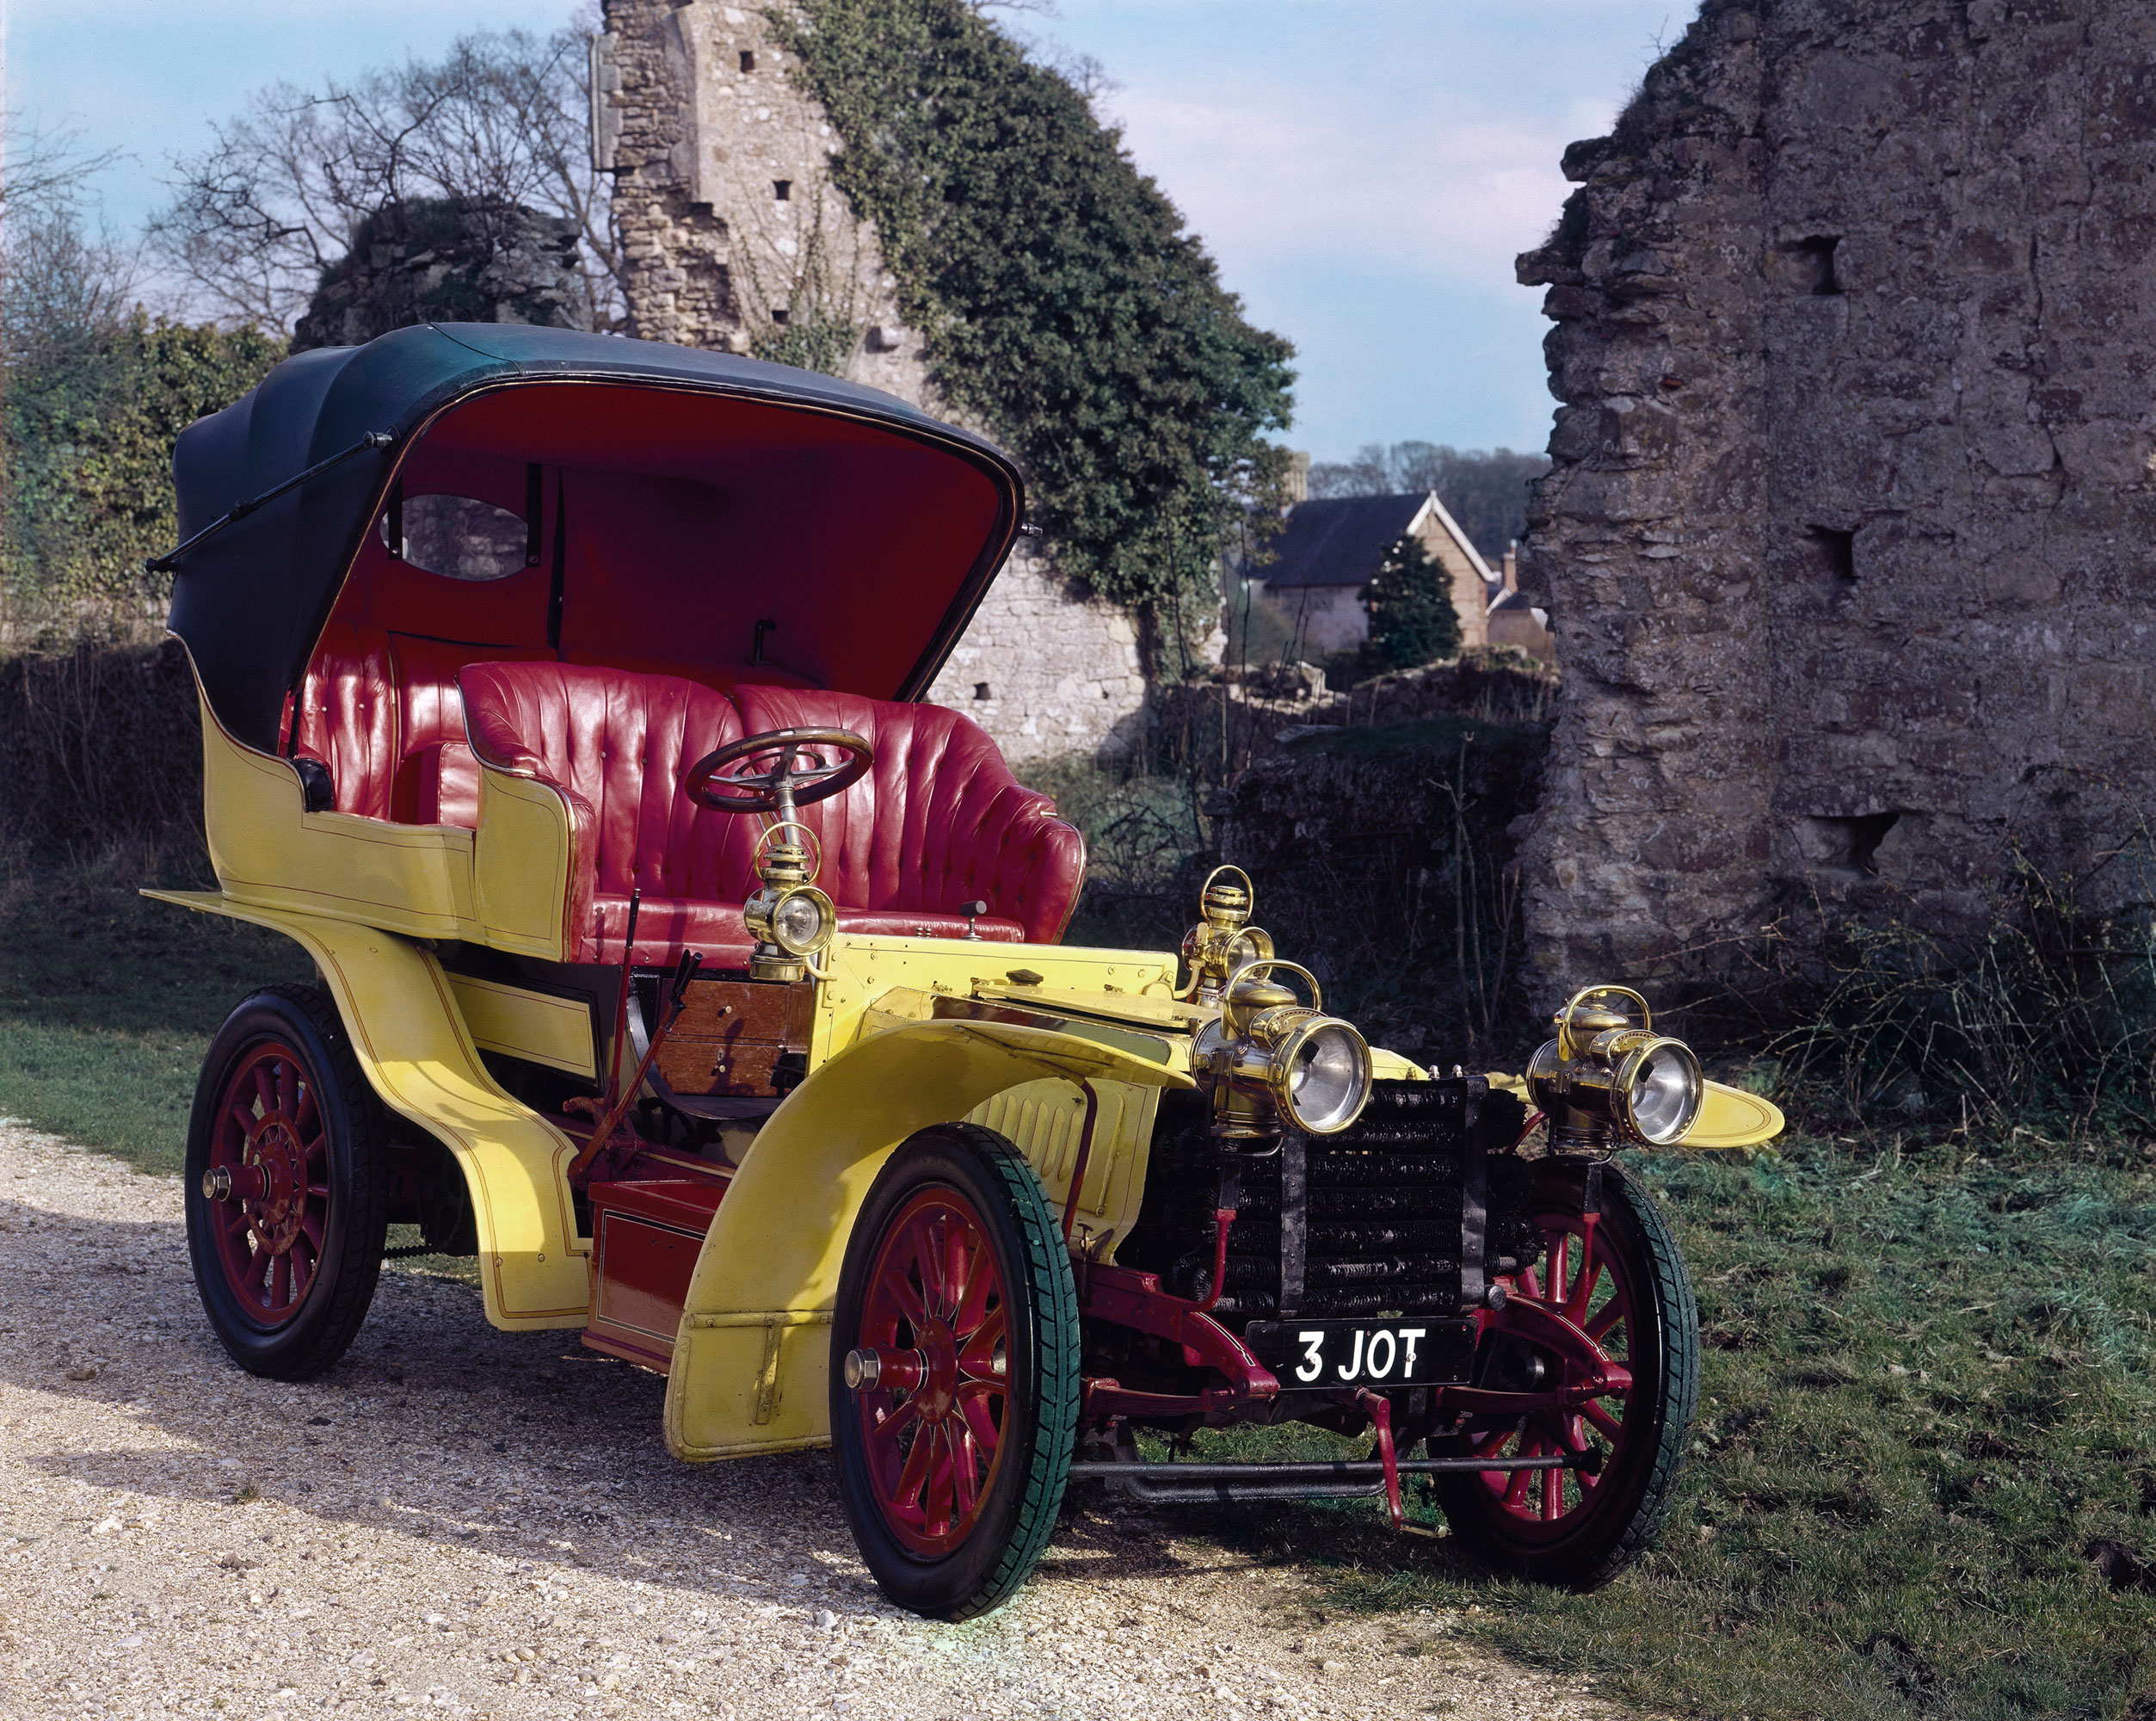 A 1903 De Dietrich 24hp veteran car